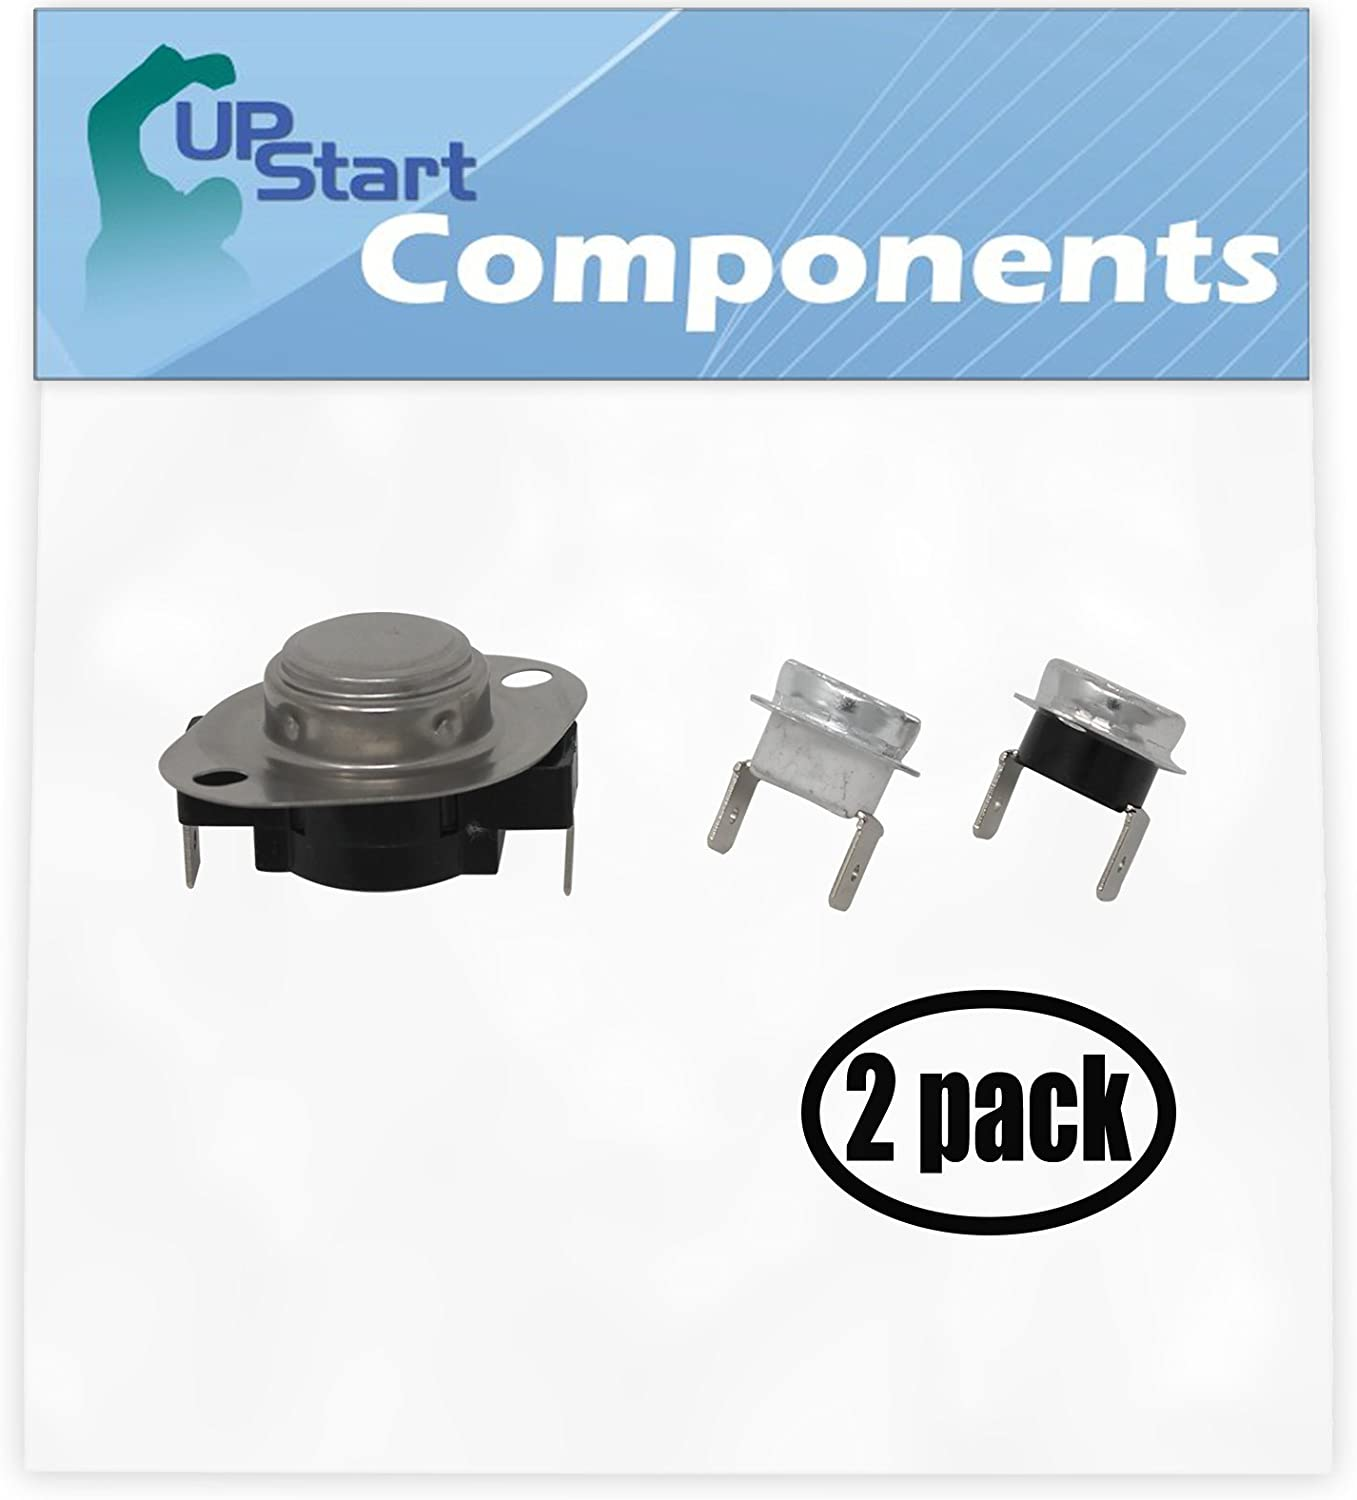 2 Pack Replacement LA-1053 Thermostat Kit for Norge 8748A Gas Dryer